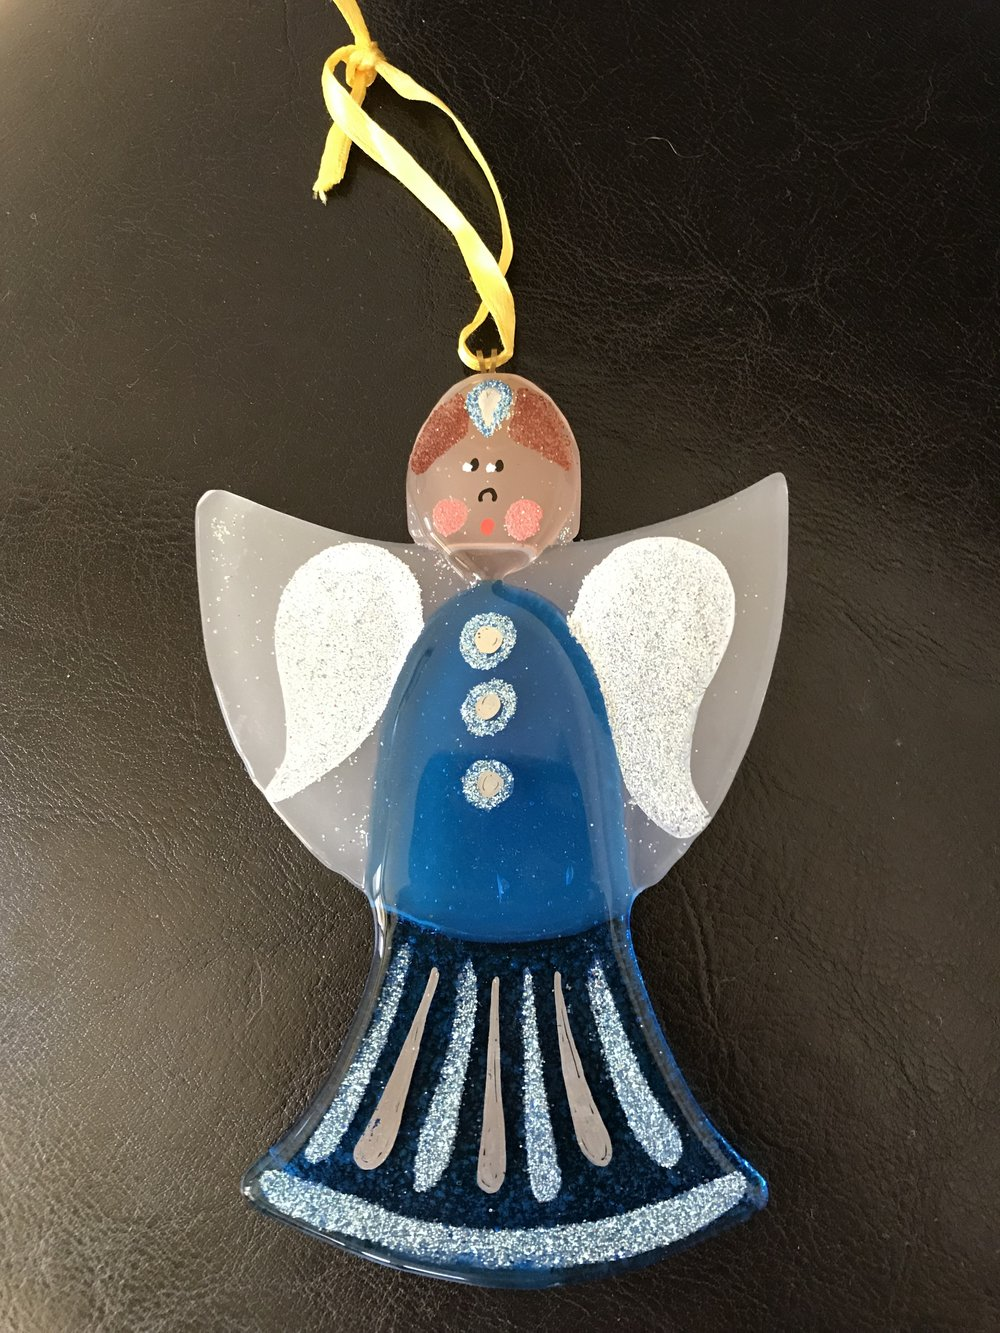 This hand-blown glass angel is from Bellagio on lovely Lake Como in northern Italy.